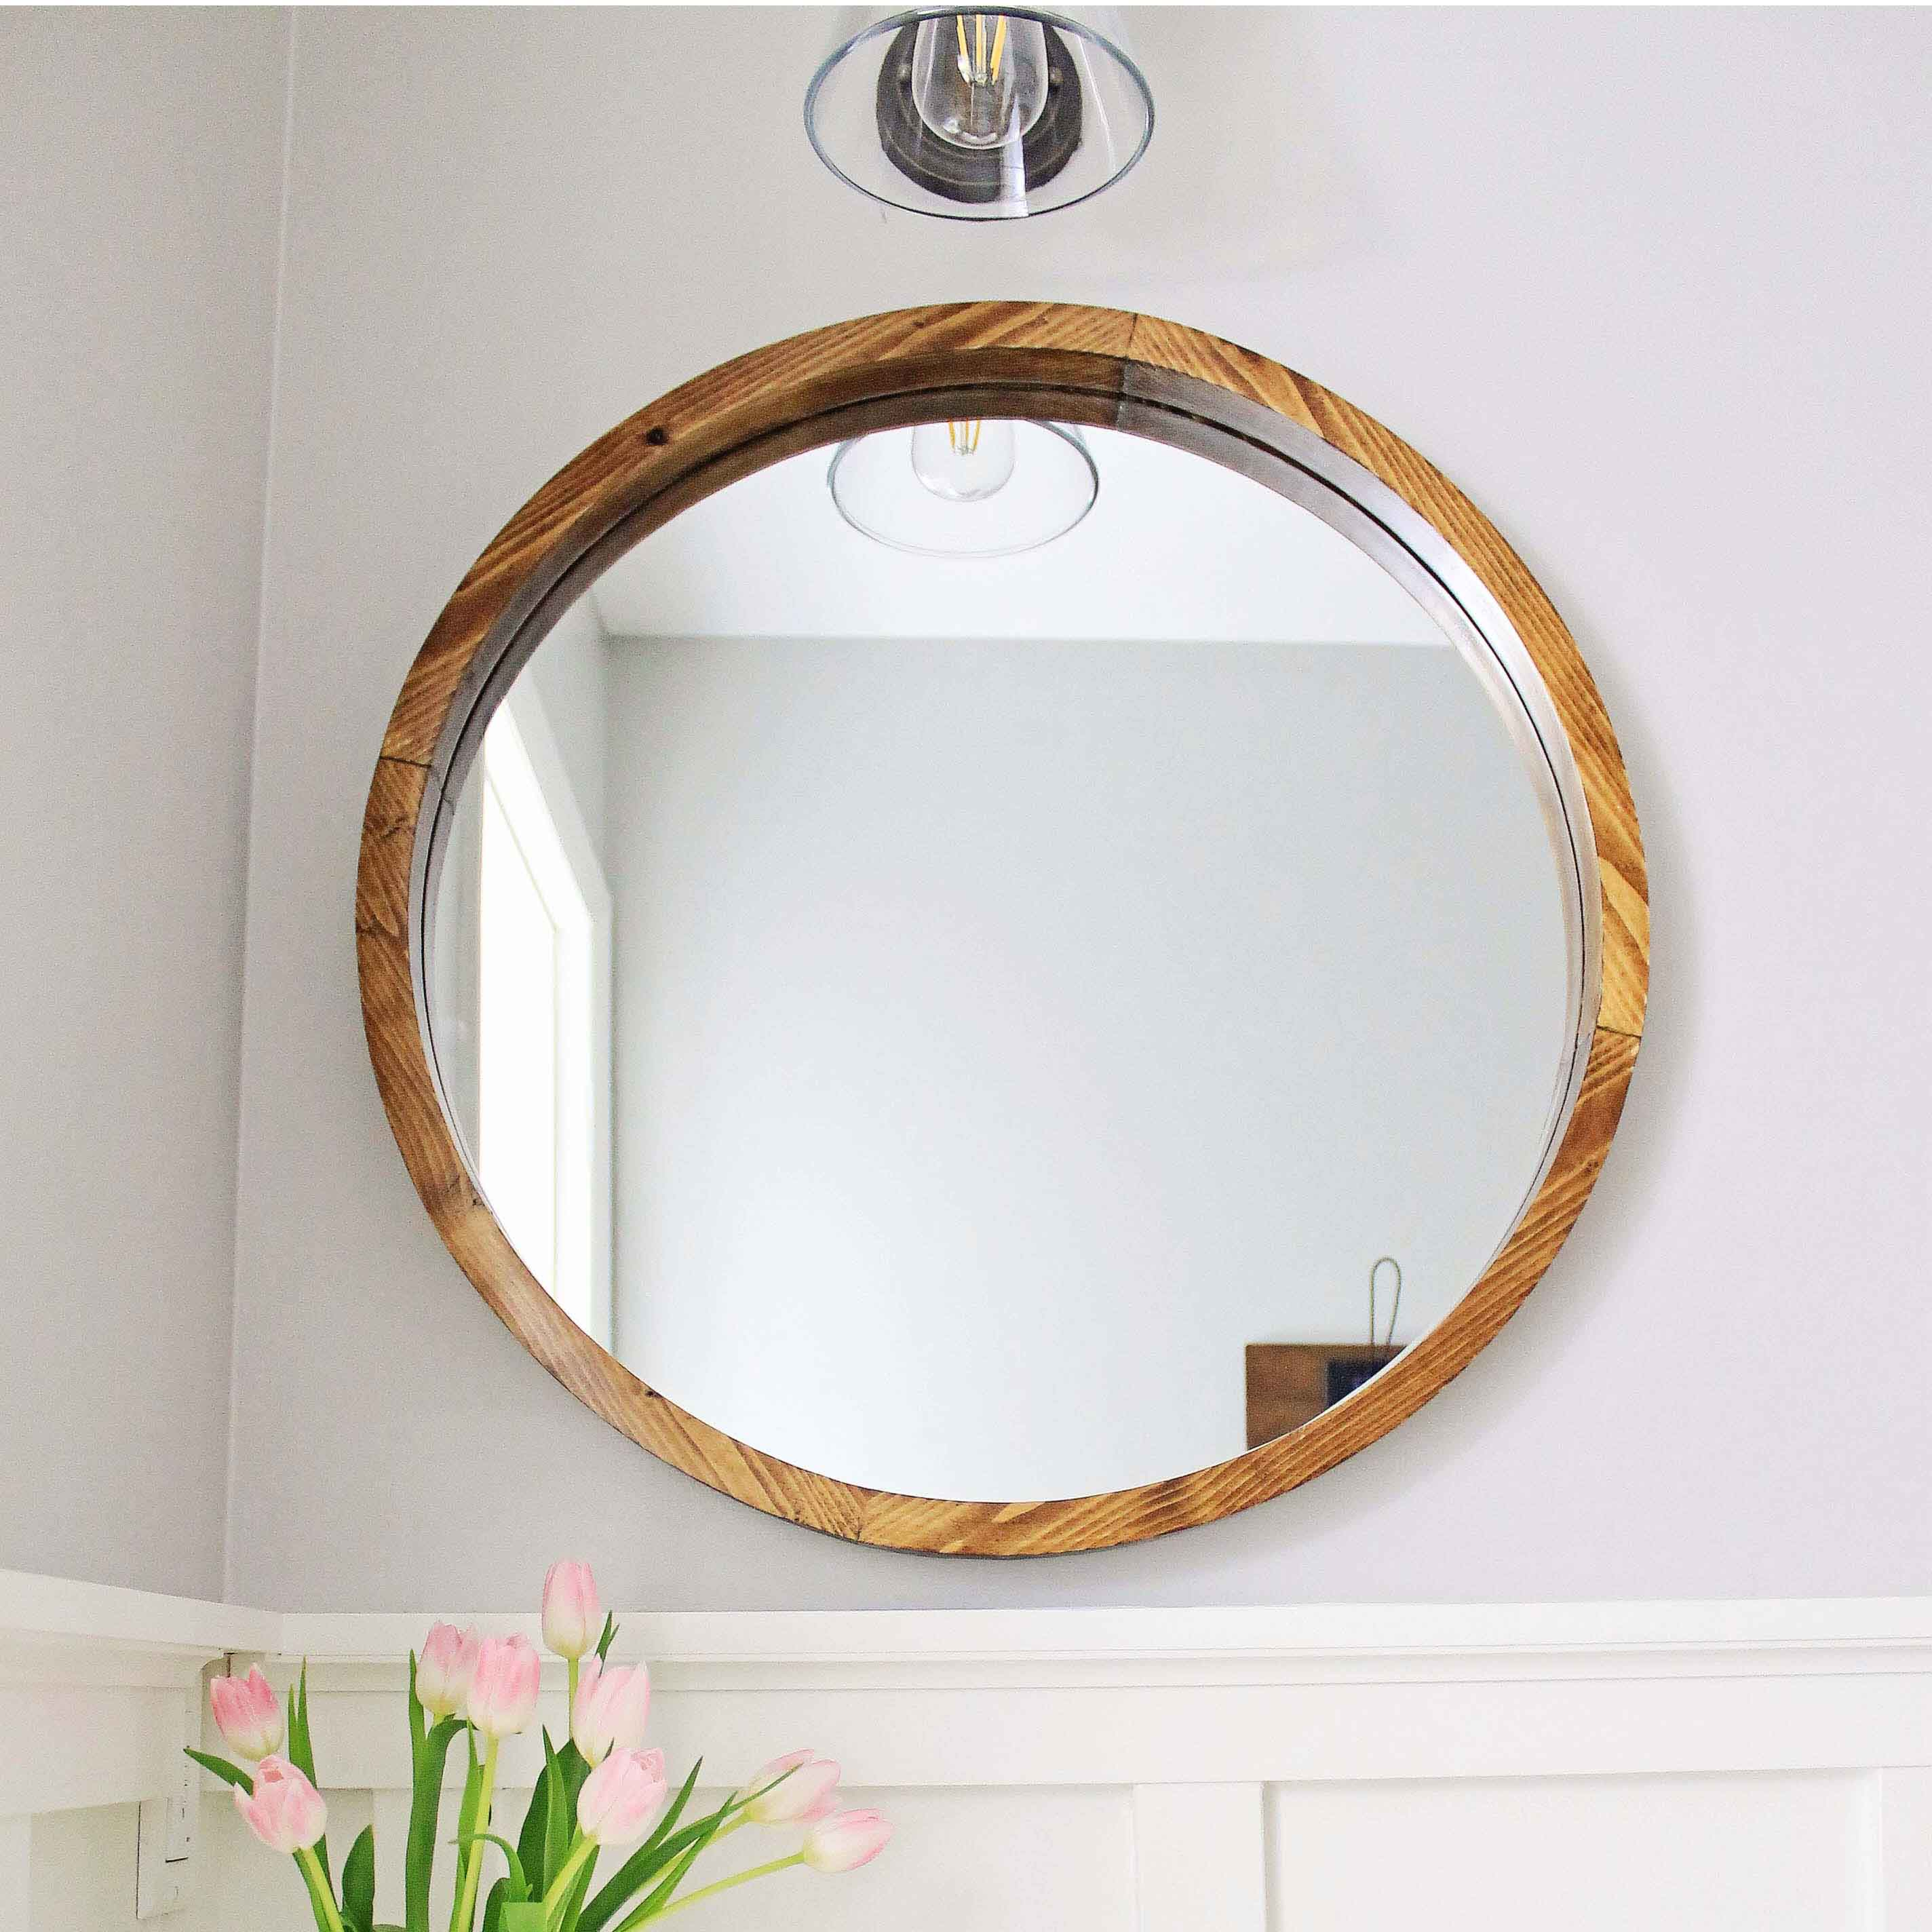 round wood mirror diy angela marie made. Black Bedroom Furniture Sets. Home Design Ideas